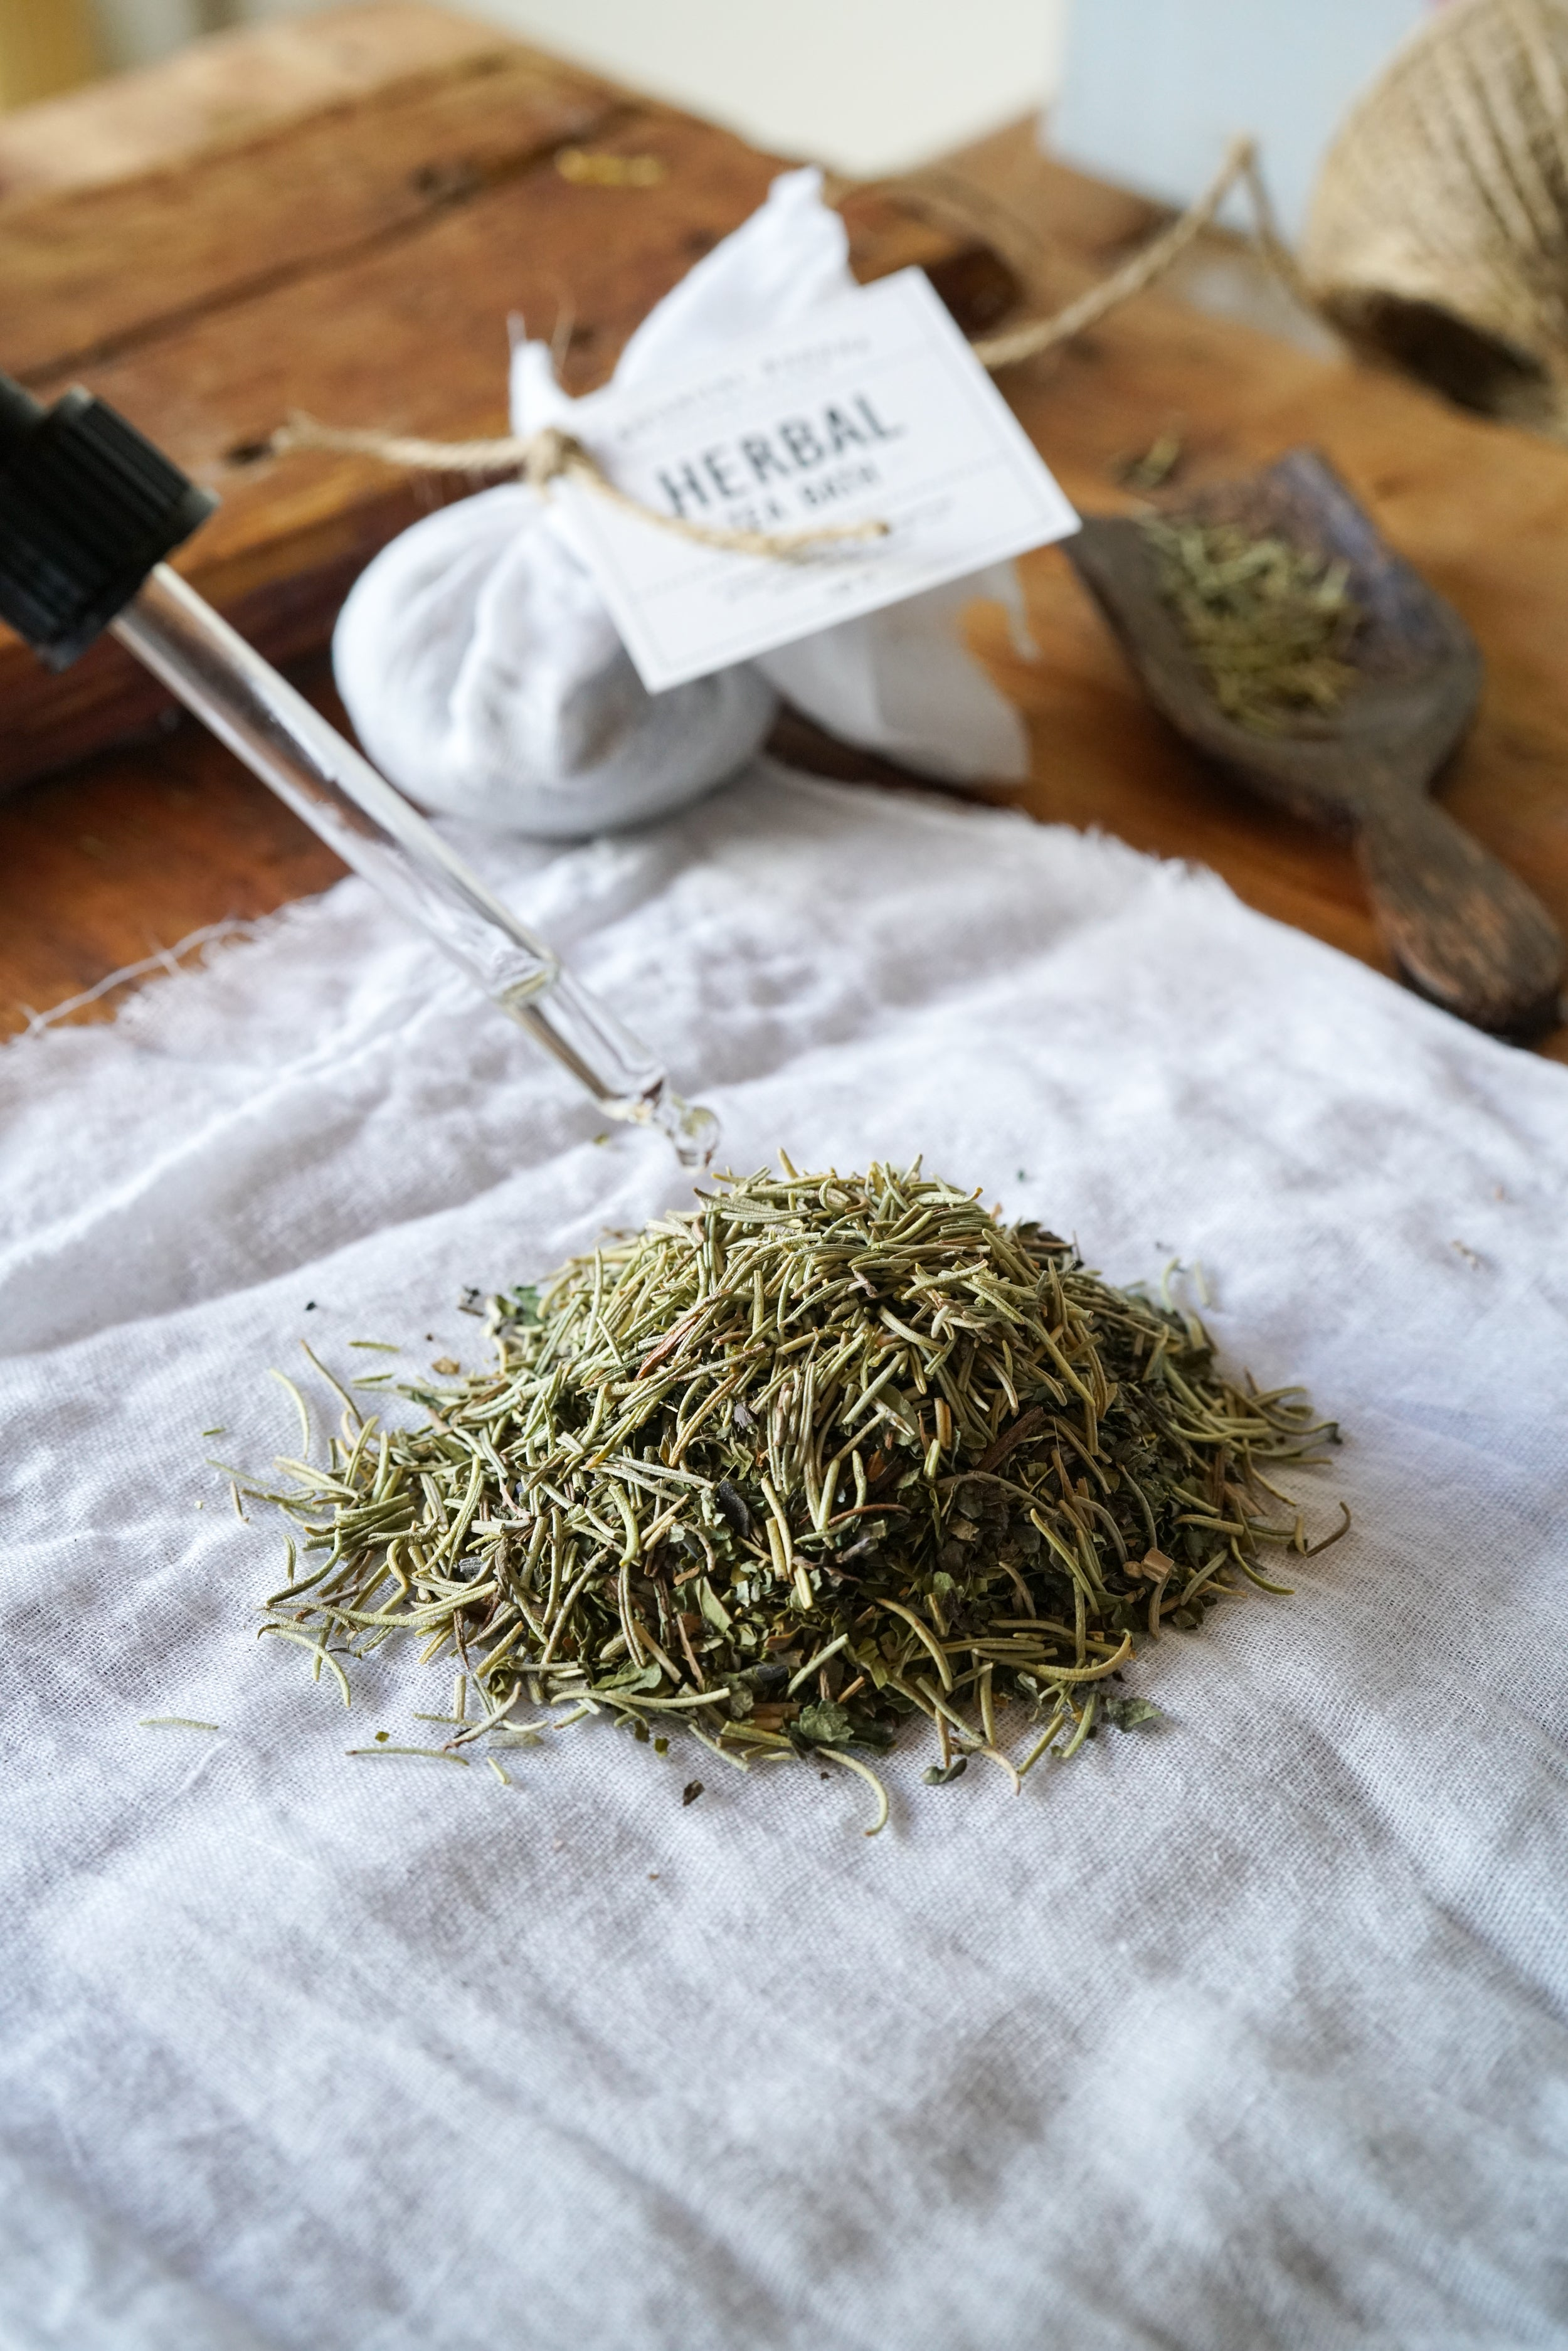 Adding essential oils to the herbs